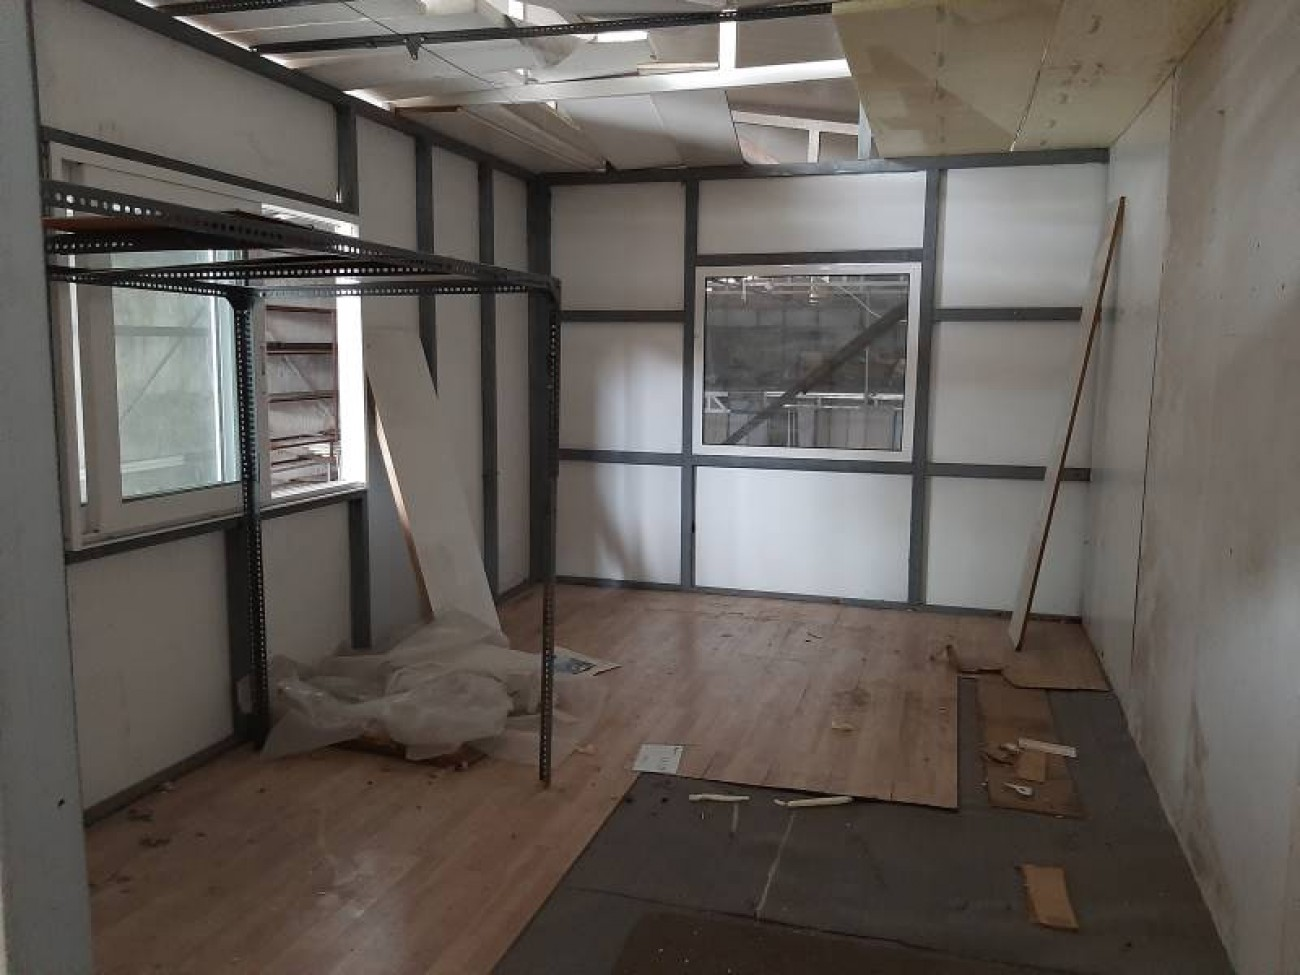 Commercial Other for Rent in Piraeus, Prefecture of Attica